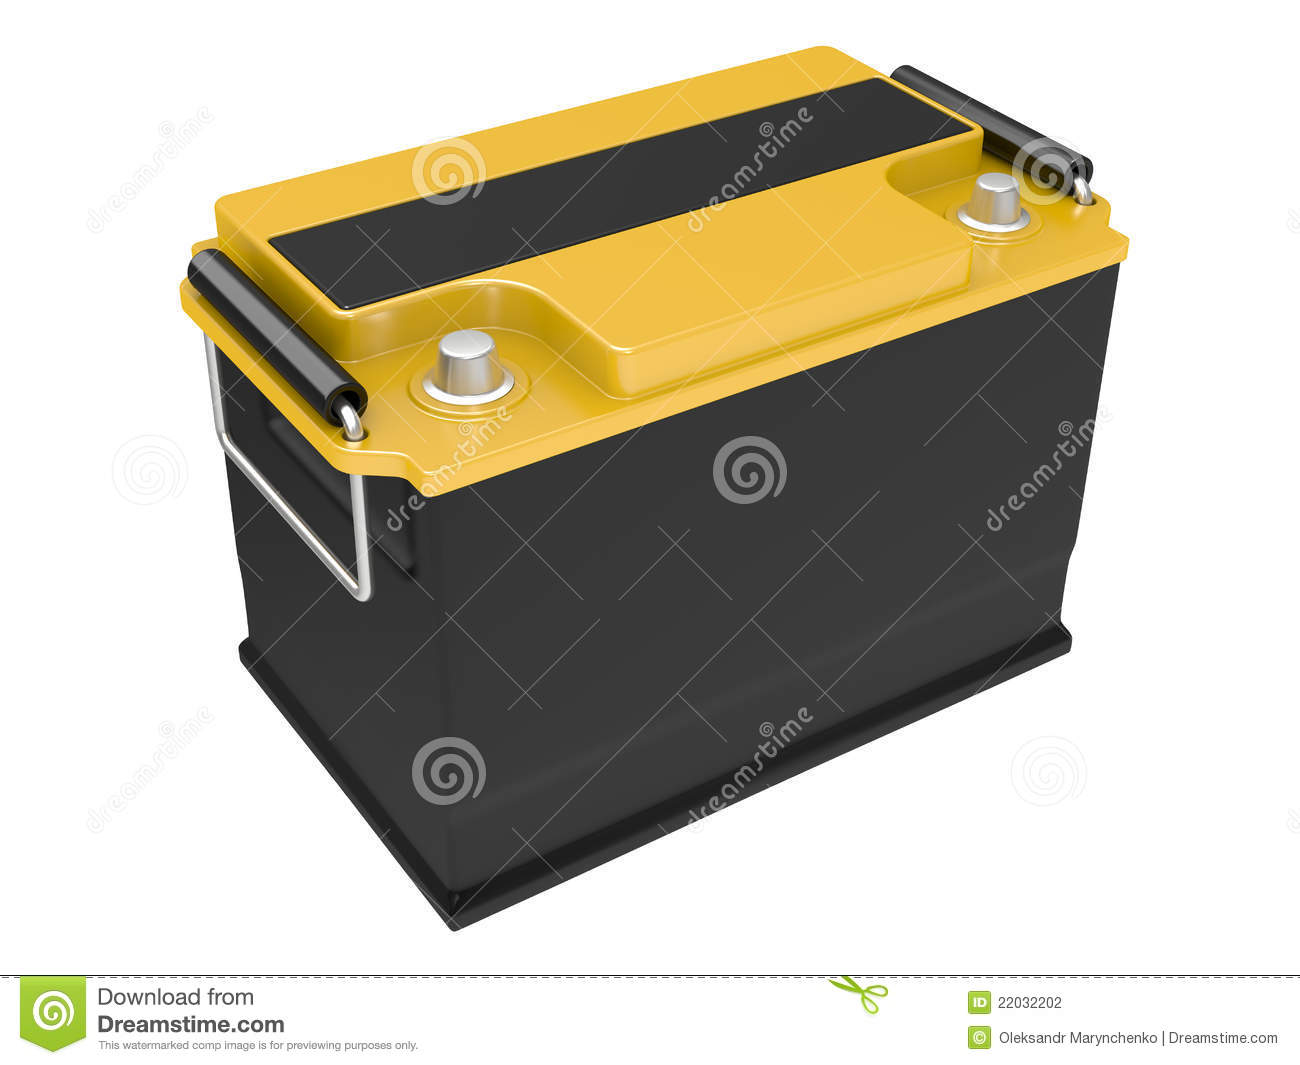 car battery stock illustration image of battery equipment 22032202. Black Bedroom Furniture Sets. Home Design Ideas